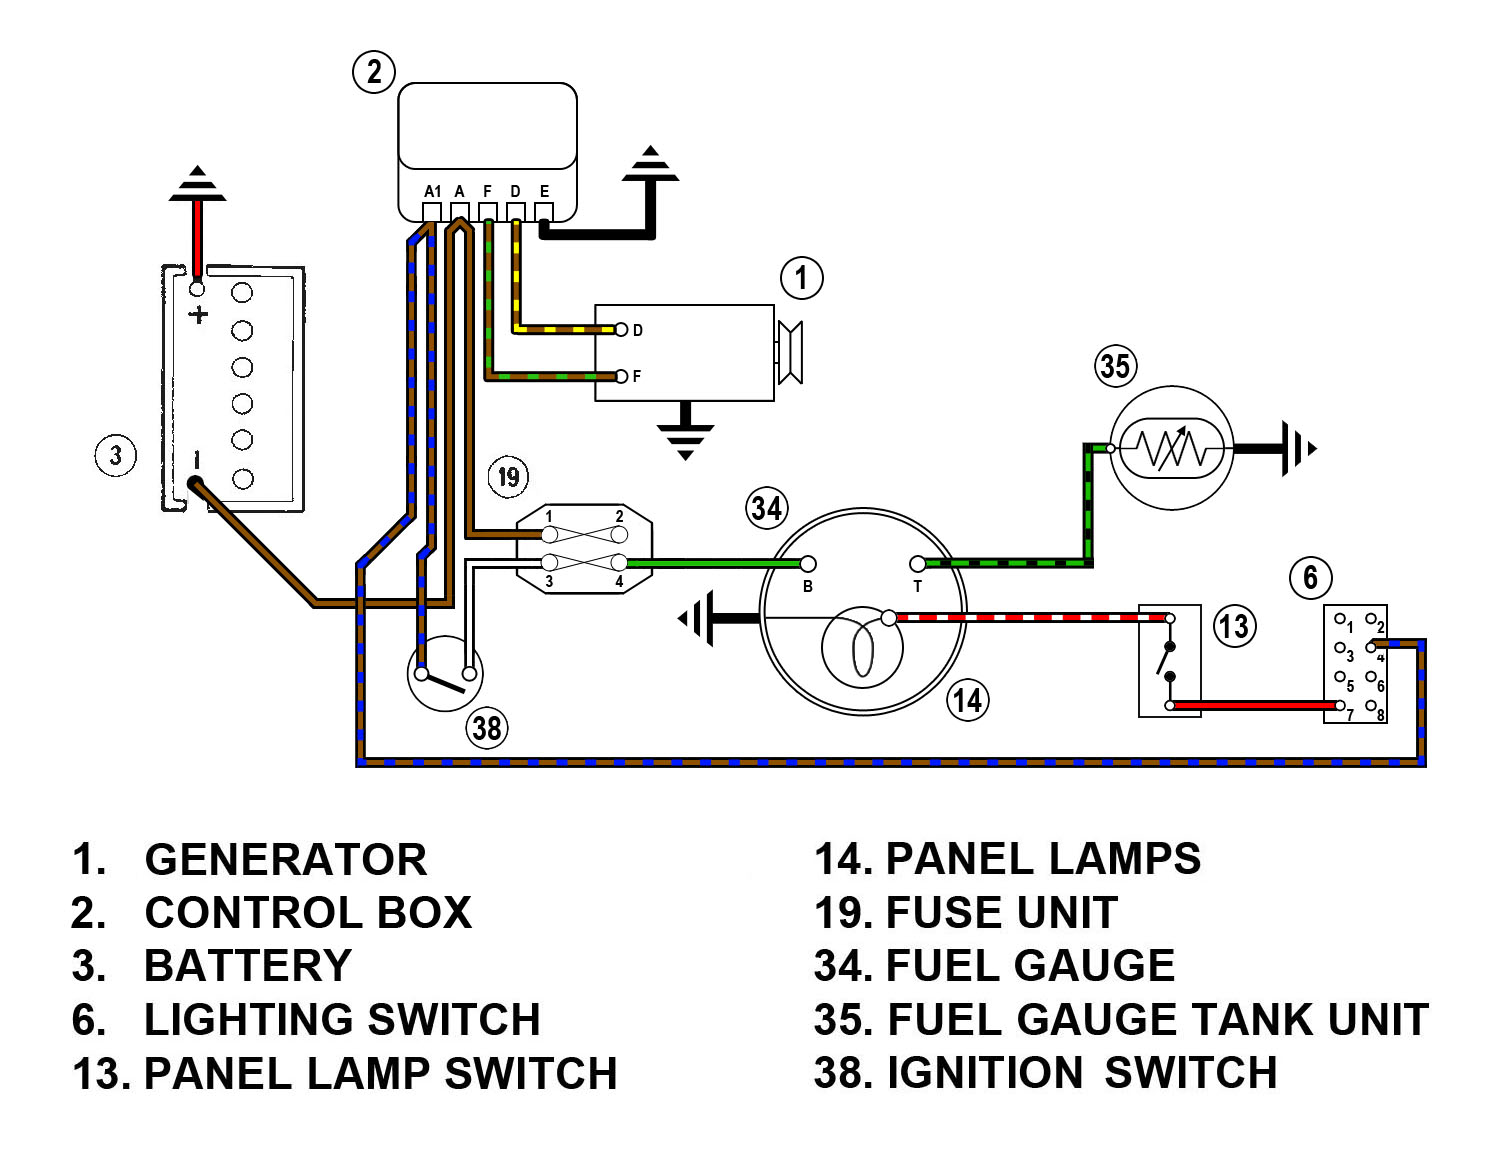 hight resolution of wiring diagram fuel gauge wiring diagram expert acdelco fuel gauge wiring